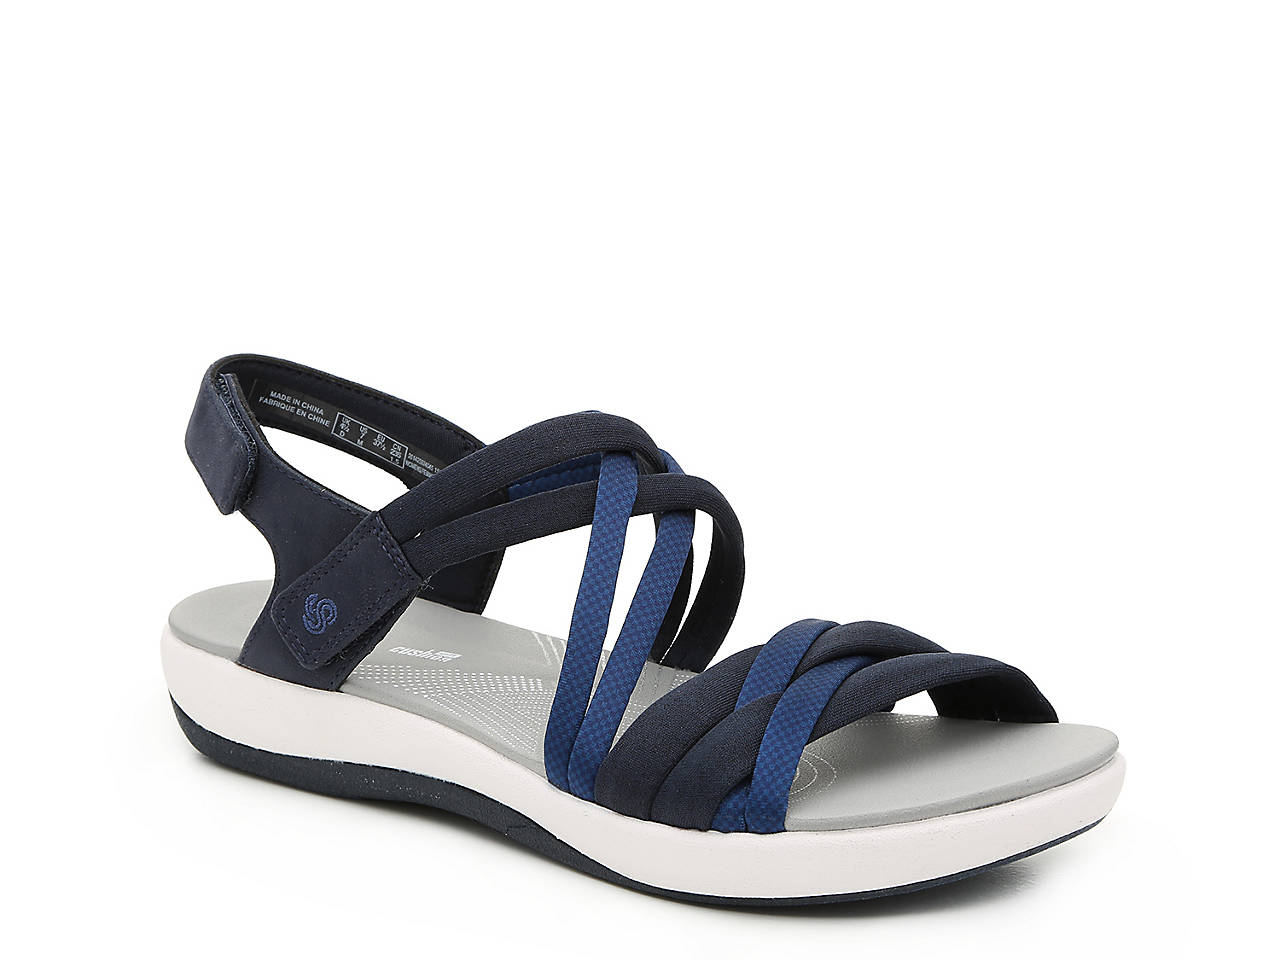 9fcd4a1028c3 Cloudsteppers by Clarks Brizo Waves Sandal Women s Shoes